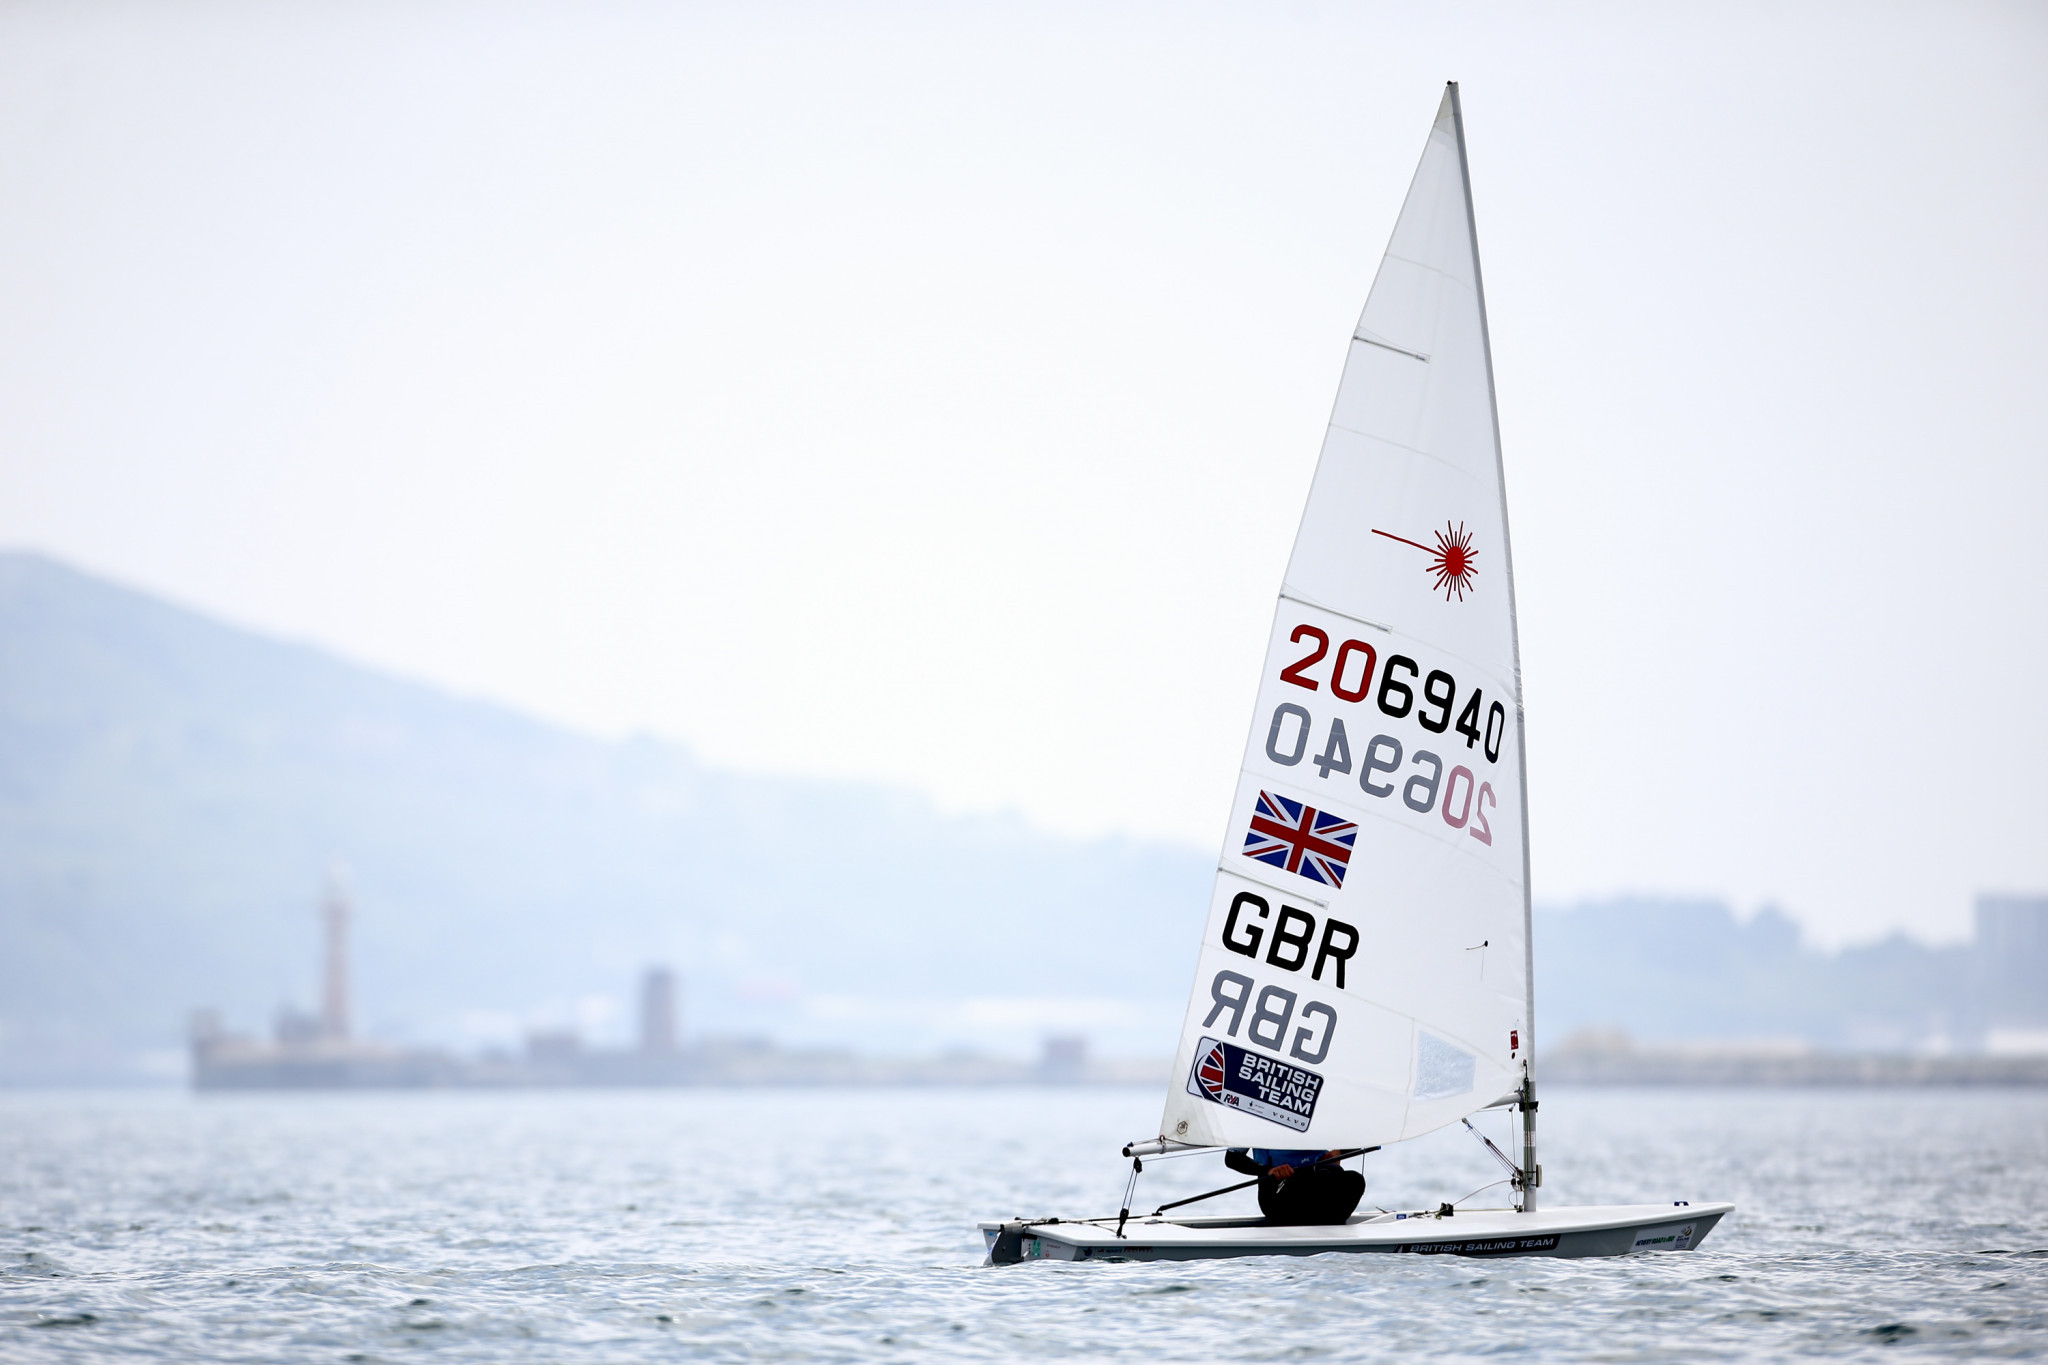 Britain's Lorenzo Chiavarini won his maiden senior title with victory in the laser competition ©Getty Images